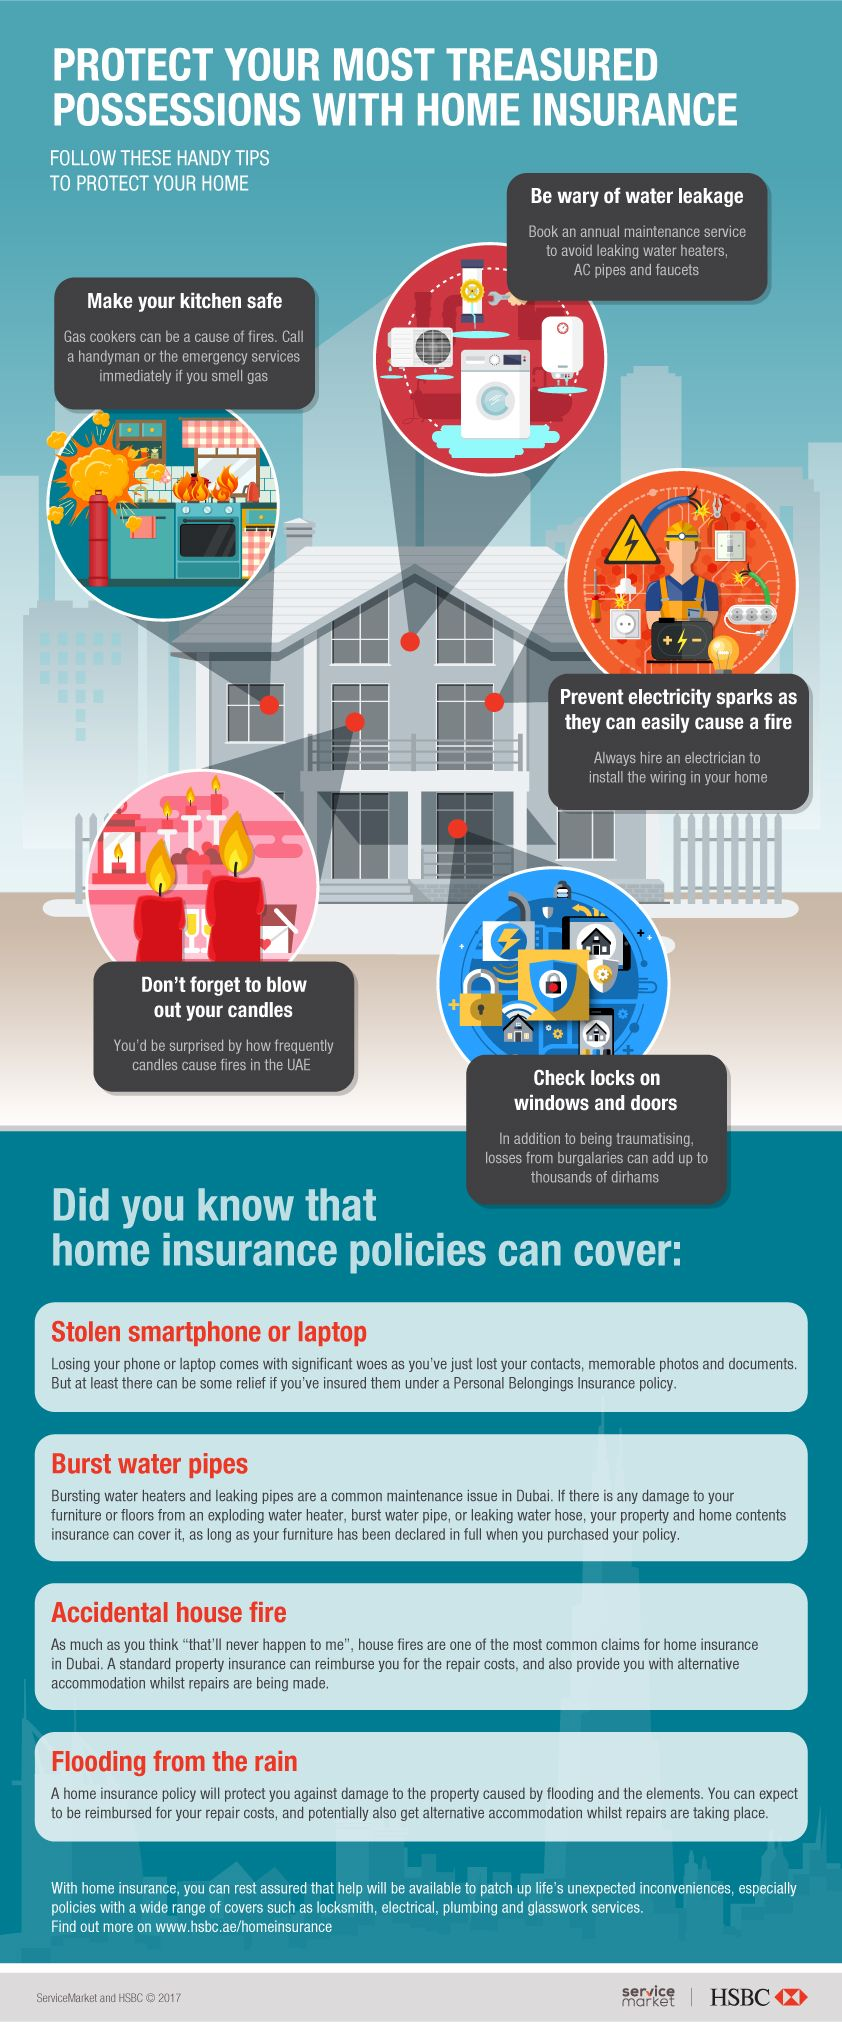 protect-possessions-home-insurance-infographic.jpg